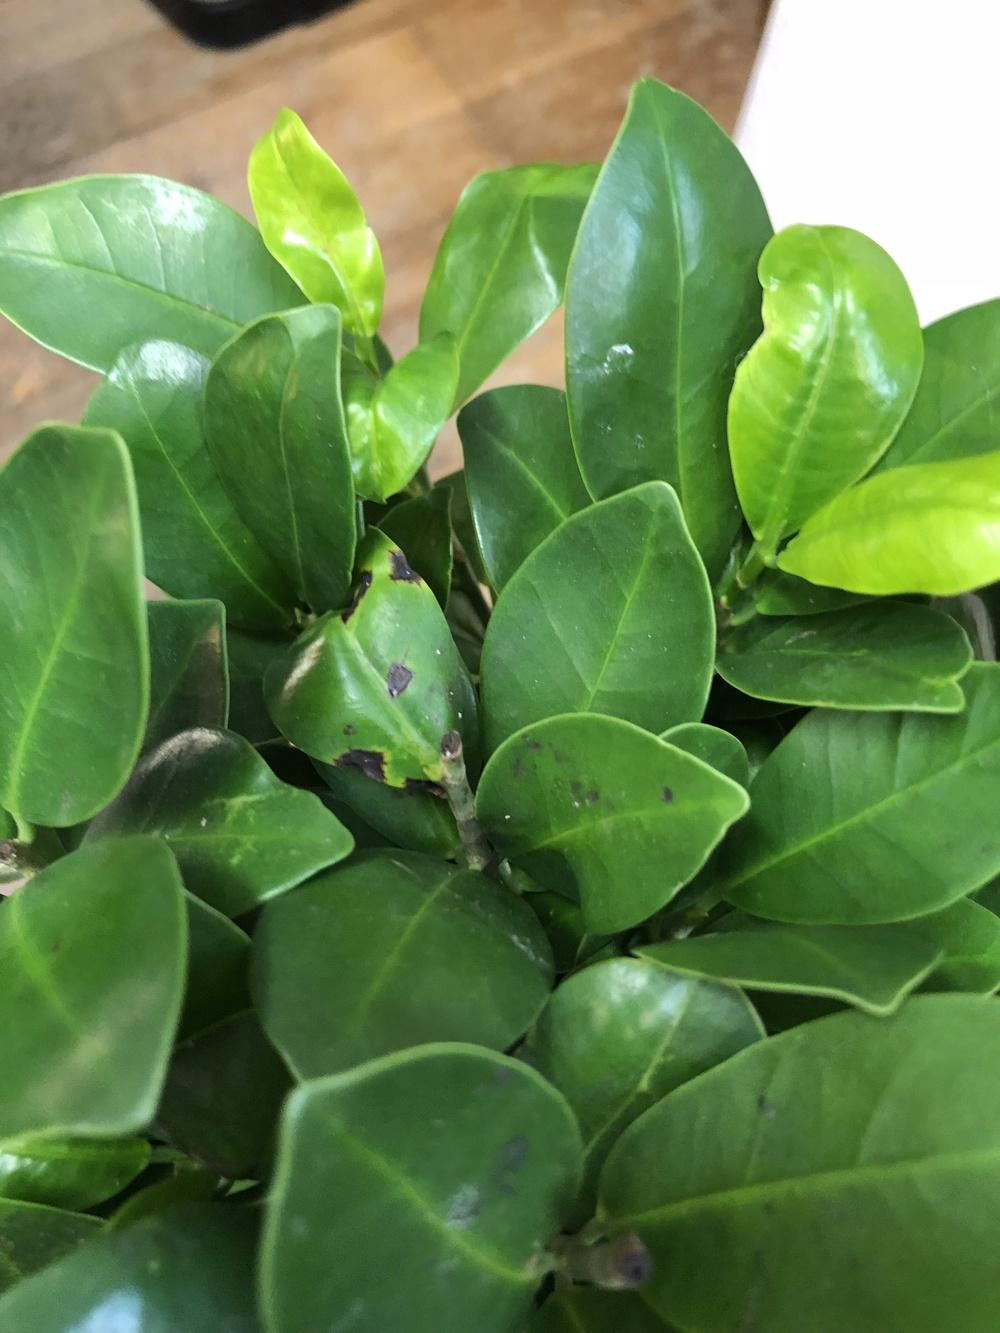 Why does the ficus shed leaves